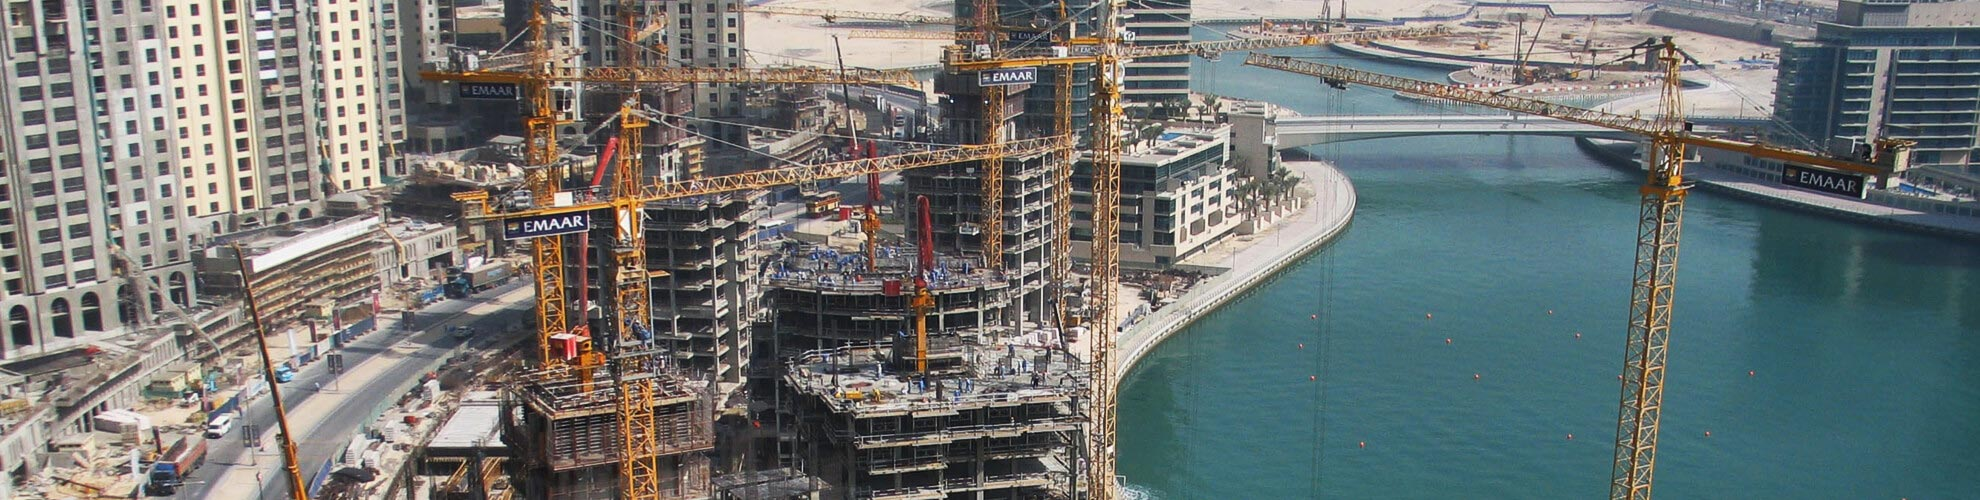 Ischebeck Titan Middle East are involved with the Dubai Marina project